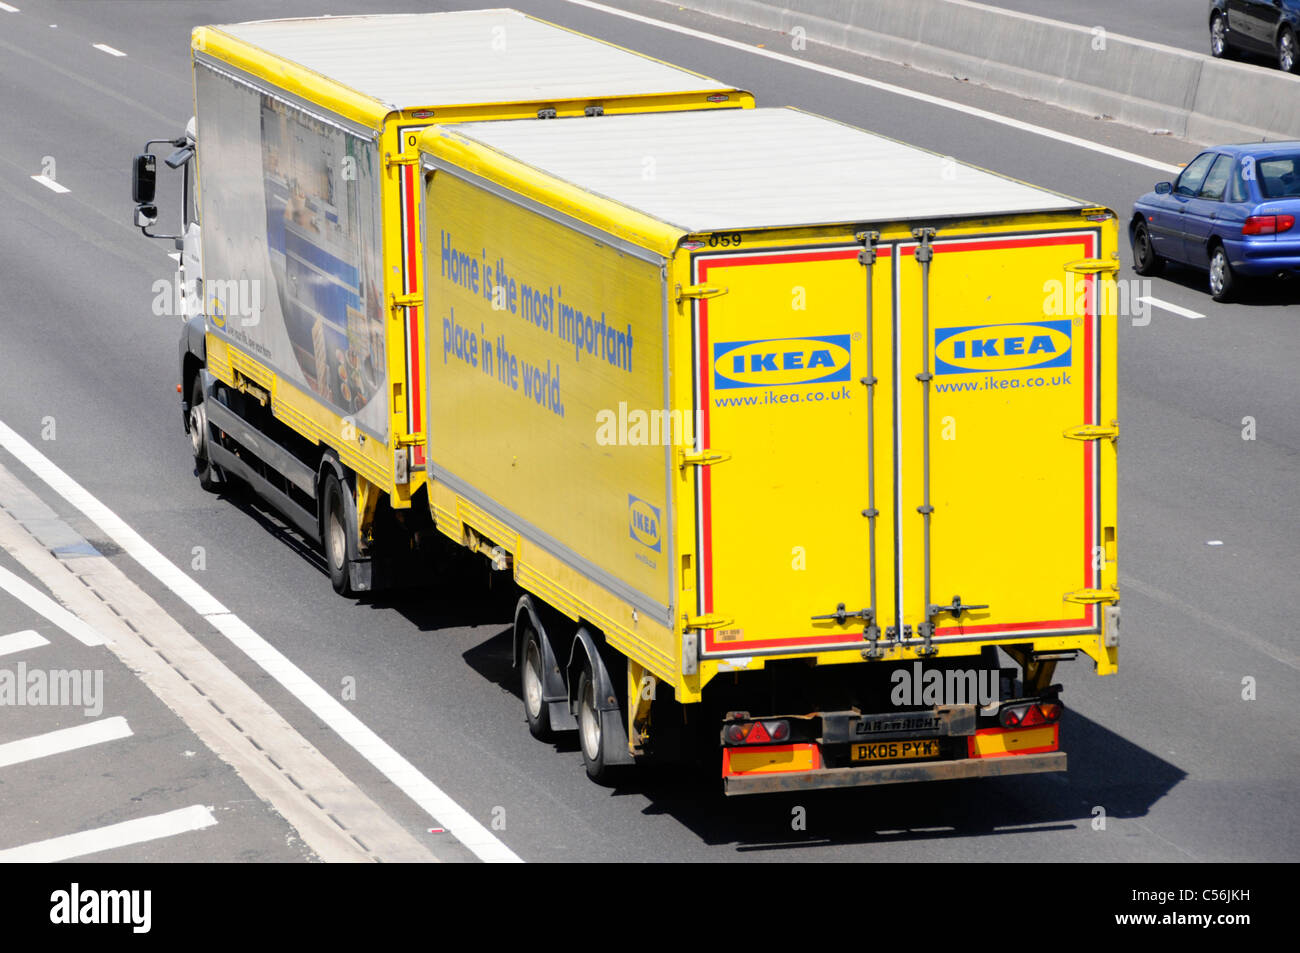 ikea delivery lorry and trailer stock photo royalty free image 37640389 alamy. Black Bedroom Furniture Sets. Home Design Ideas